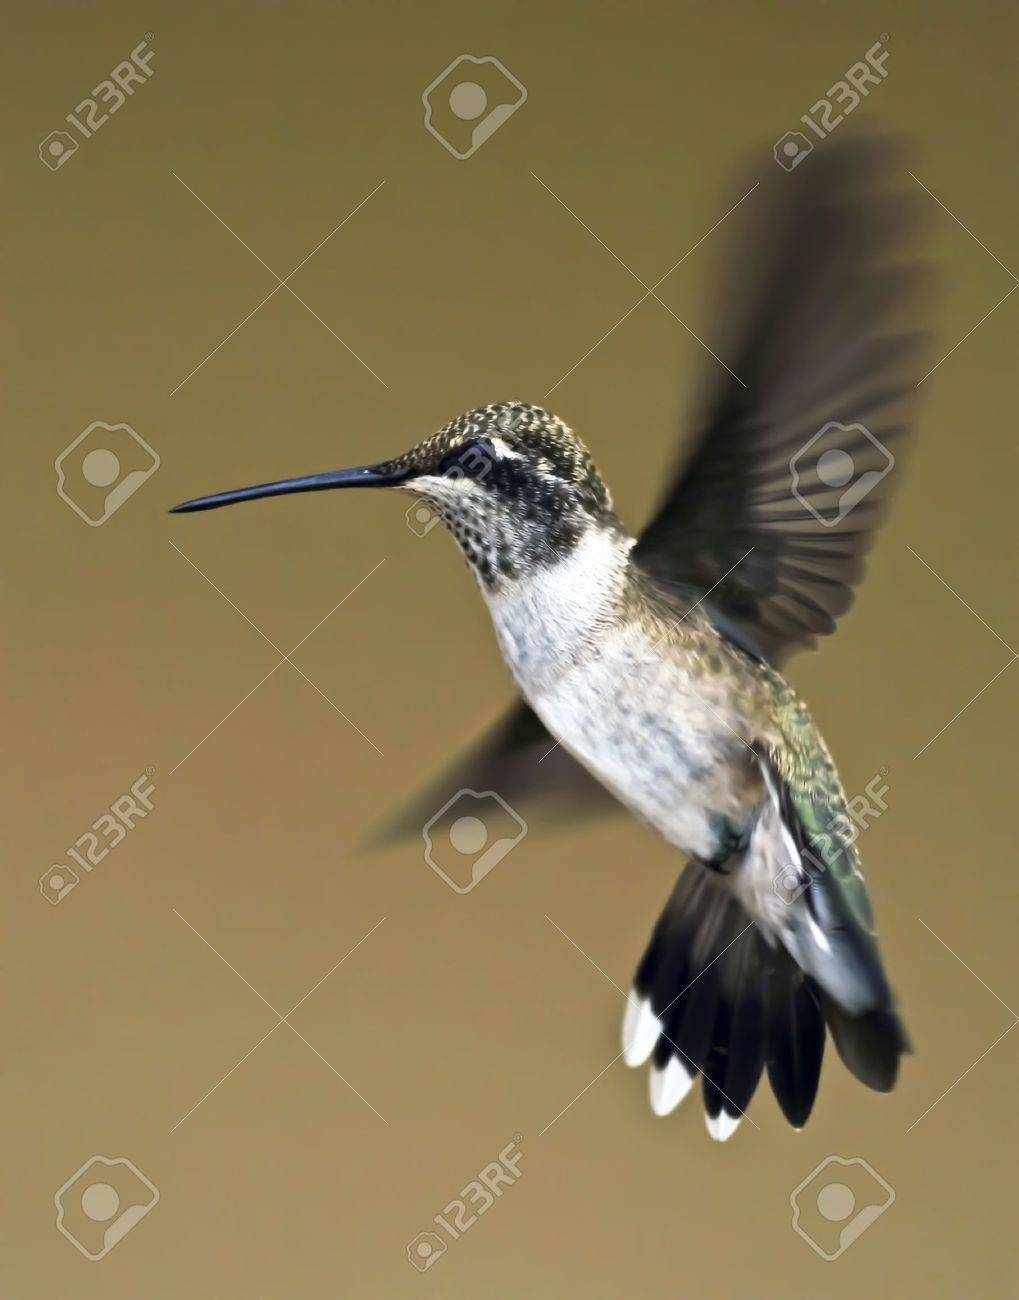 A Female Blue-throated Hummingbird Hovers Momentarily in Flight - 10486881